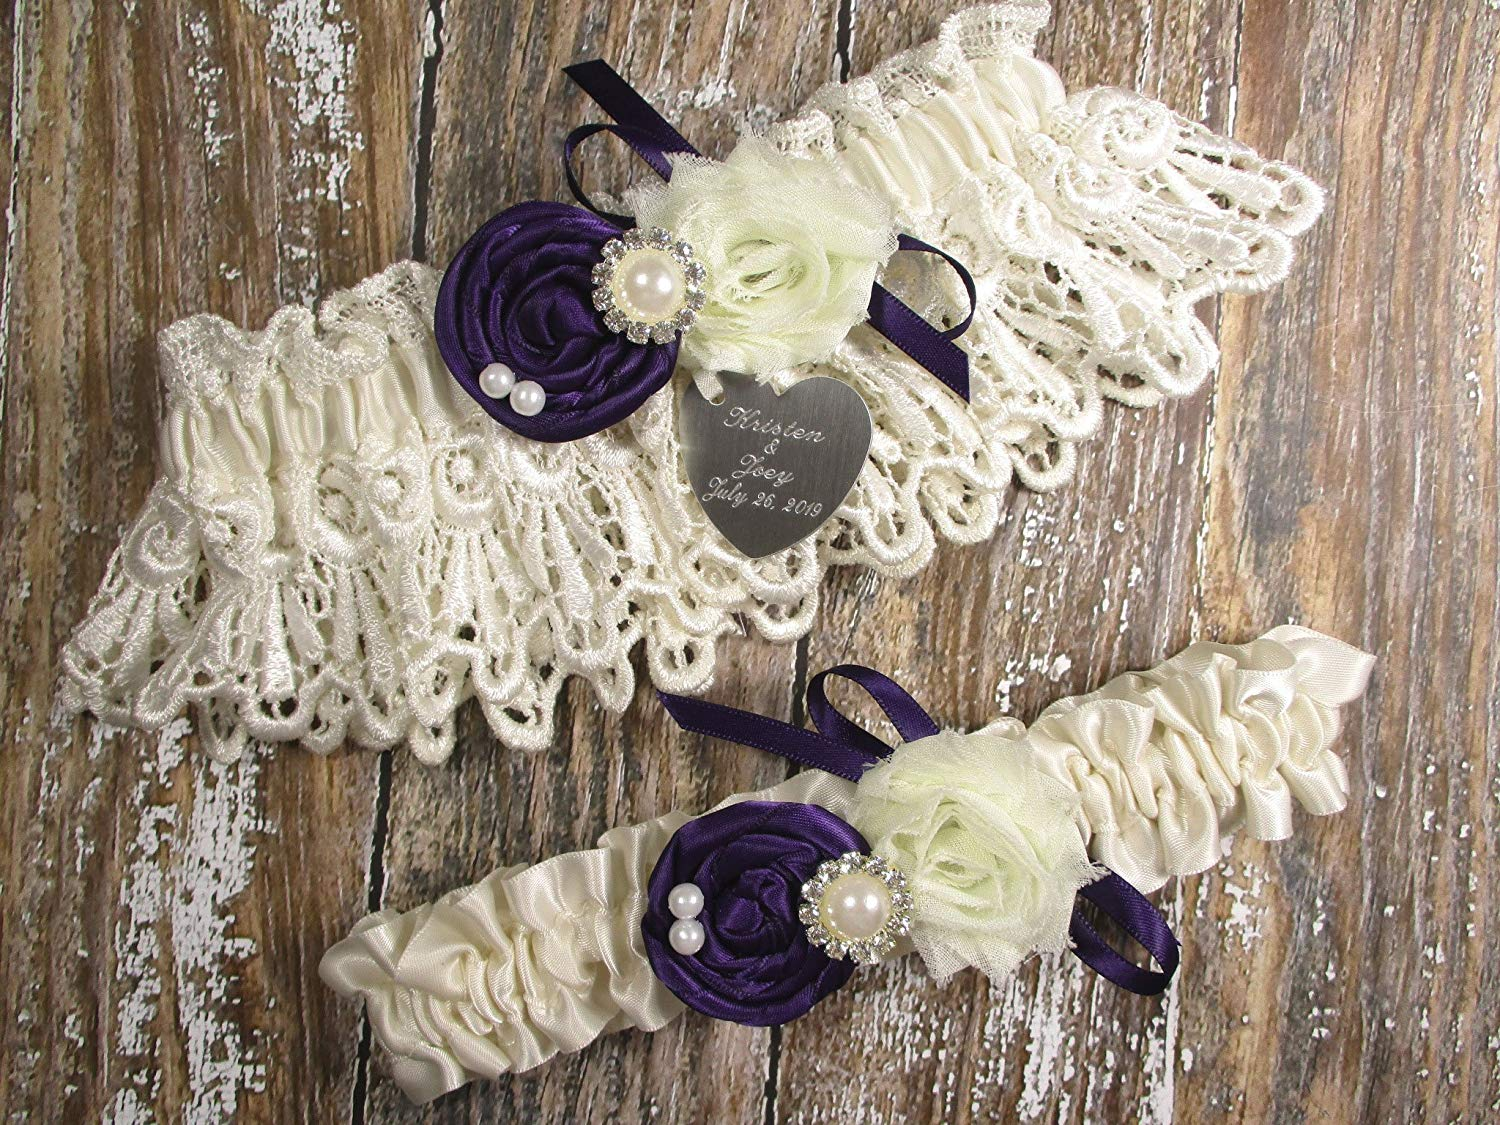 14bb3fefbd2 Get Quotations · Ivory Lace Wedding Garter Set with Purple Handmade Roses